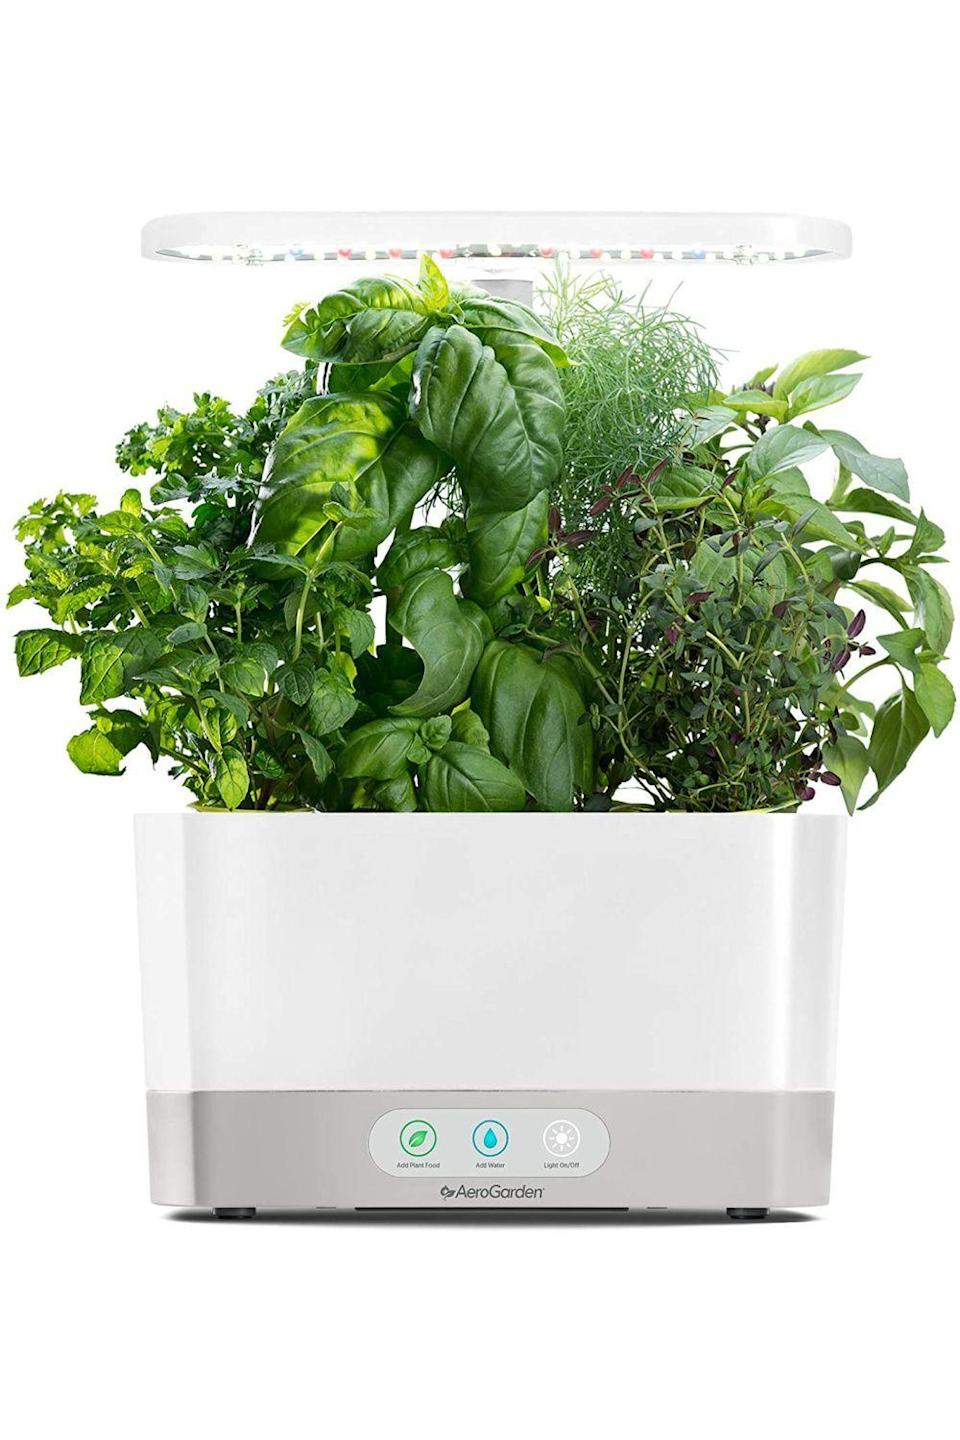 "<p><strong>AeroGarden</strong></p><p>amazon.com</p><p><strong>$99.97</strong></p><p><a href=""https://www.amazon.com/dp/B07CKNWHPQ?tag=syn-yahoo-20&ascsubtag=%5Bartid%7C10049.g.35221189%5Bsrc%7Cyahoo-us"" rel=""nofollow noopener"" target=""_blank"" data-ylk=""slk:Shop Now"" class=""link rapid-noclick-resp"">Shop Now</a></p><p>No one likes to buy new herbs all the time. Help your mom grow her own lil garden with this indoor planter, which has lights and tells you when to add water and food.</p>"